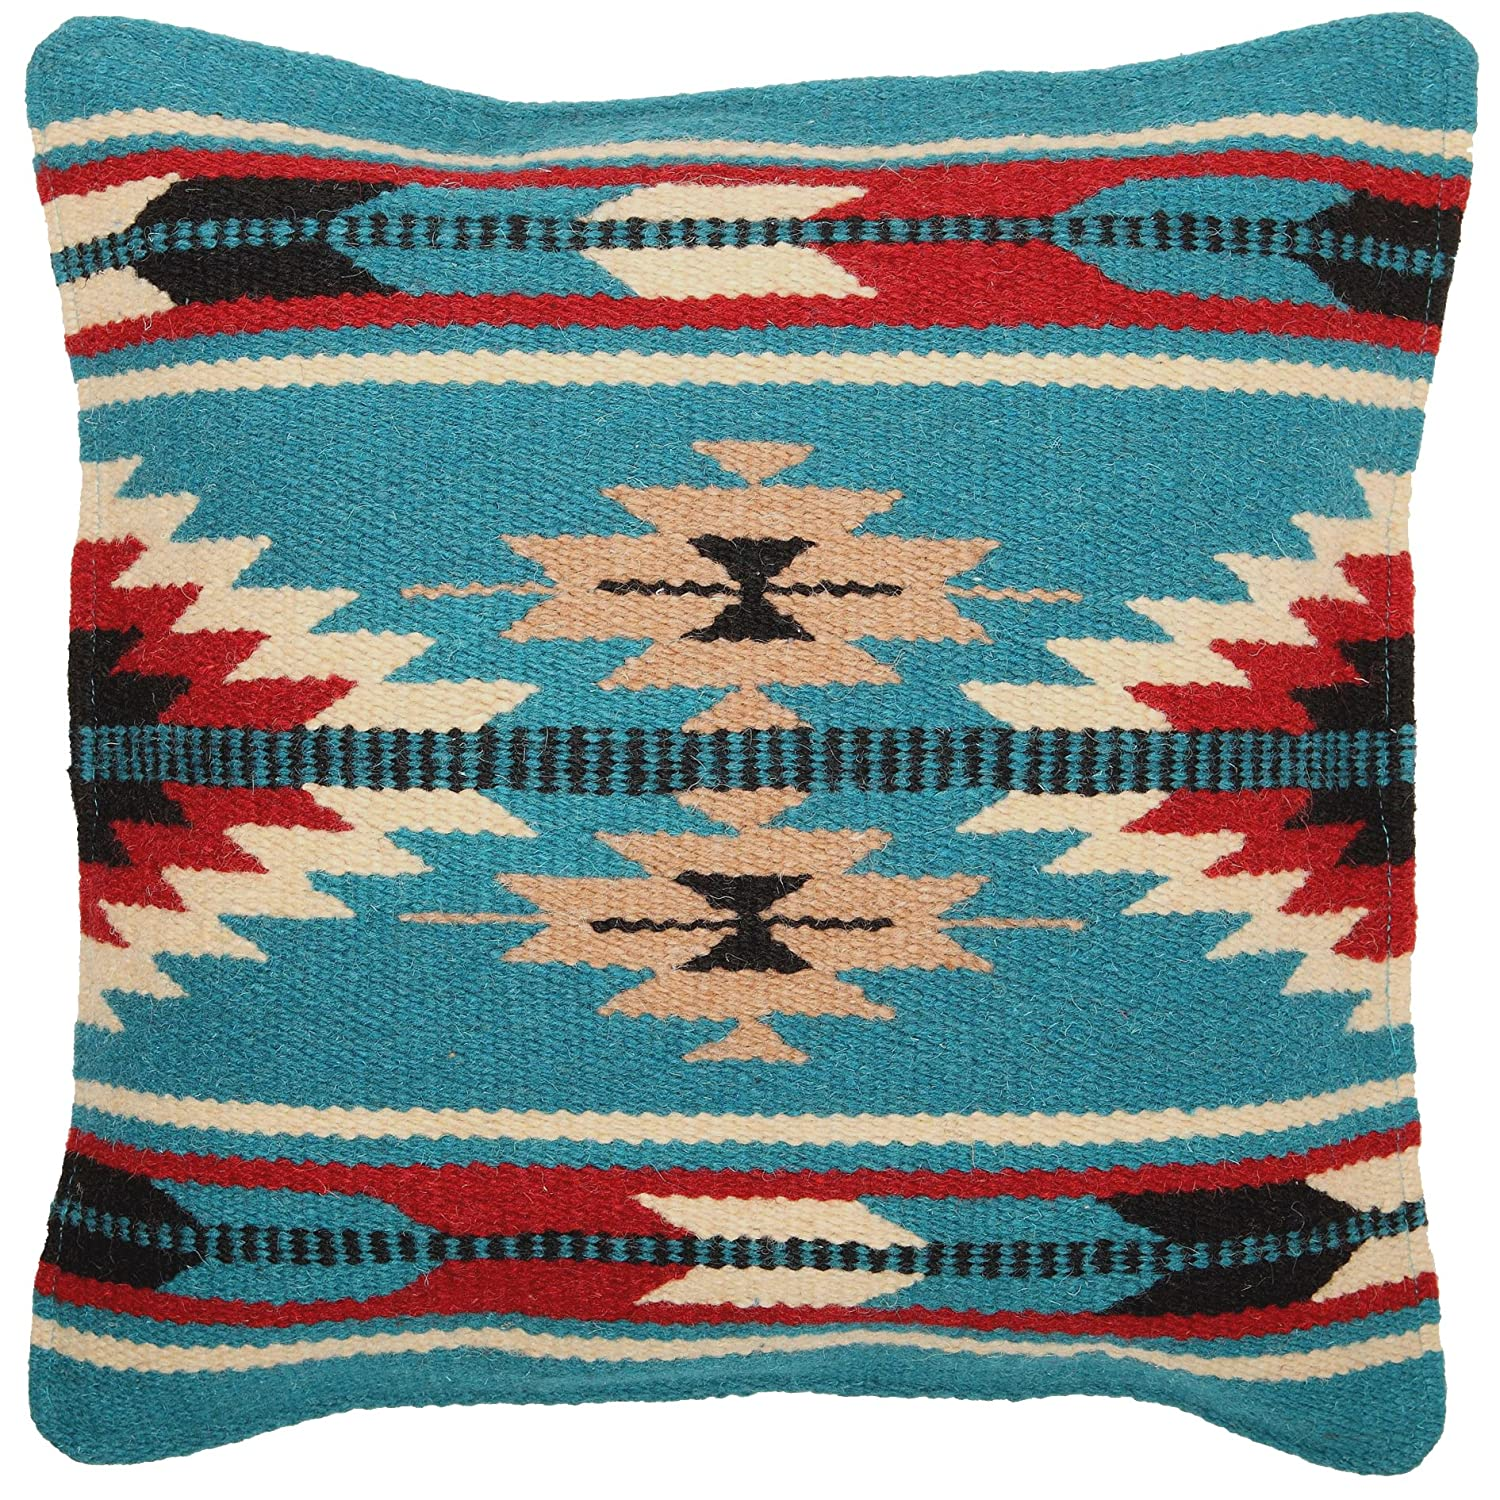 pillowcase a weave pillows of yarn how pillow bohemian out make covers with woven throw to